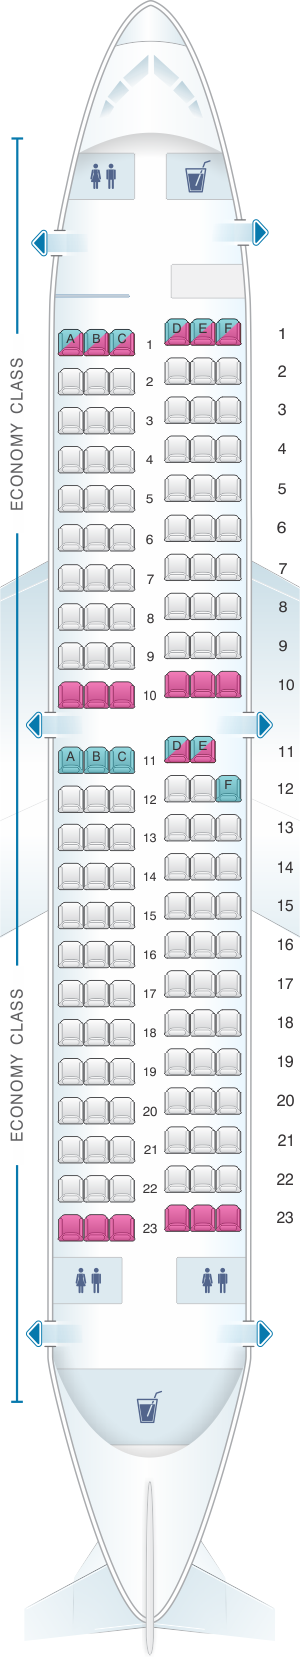 Seat map for Southwest Airlines Boeing B737 300 137pax